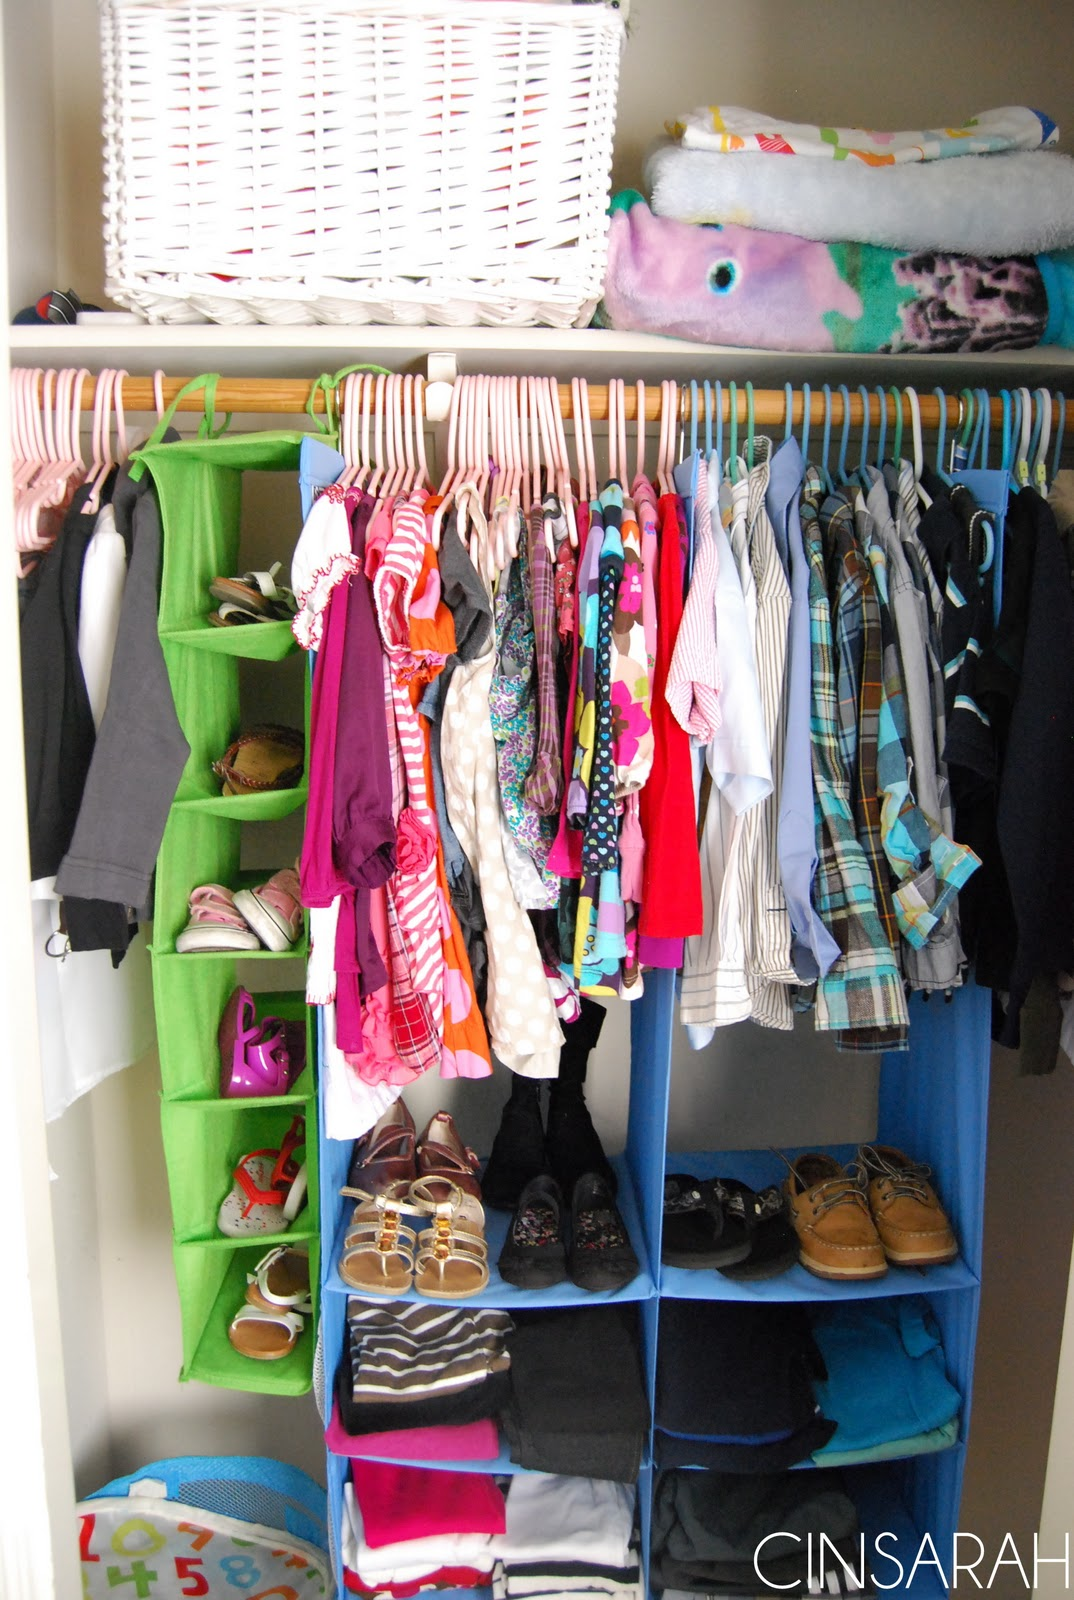 And Here Is The Kids Closet With The New Organizer: